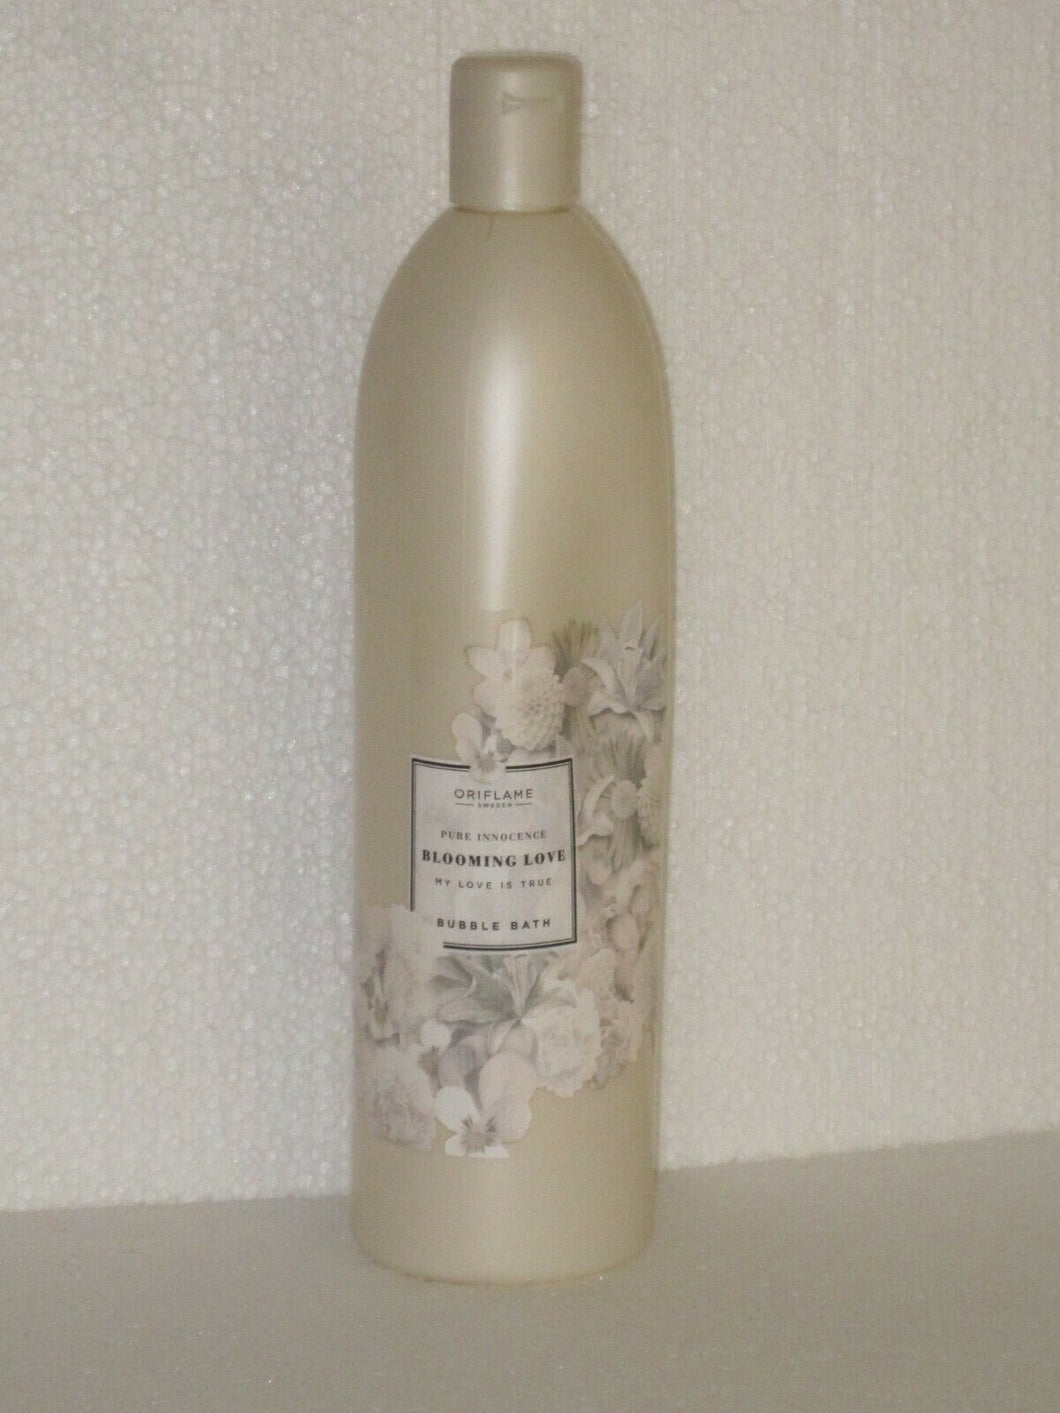 ORIFLAME SWEDEN PURE INNOCENCE BLOOMING LOVE BUBBLE BATH JUMBO 750 ml.NEW!